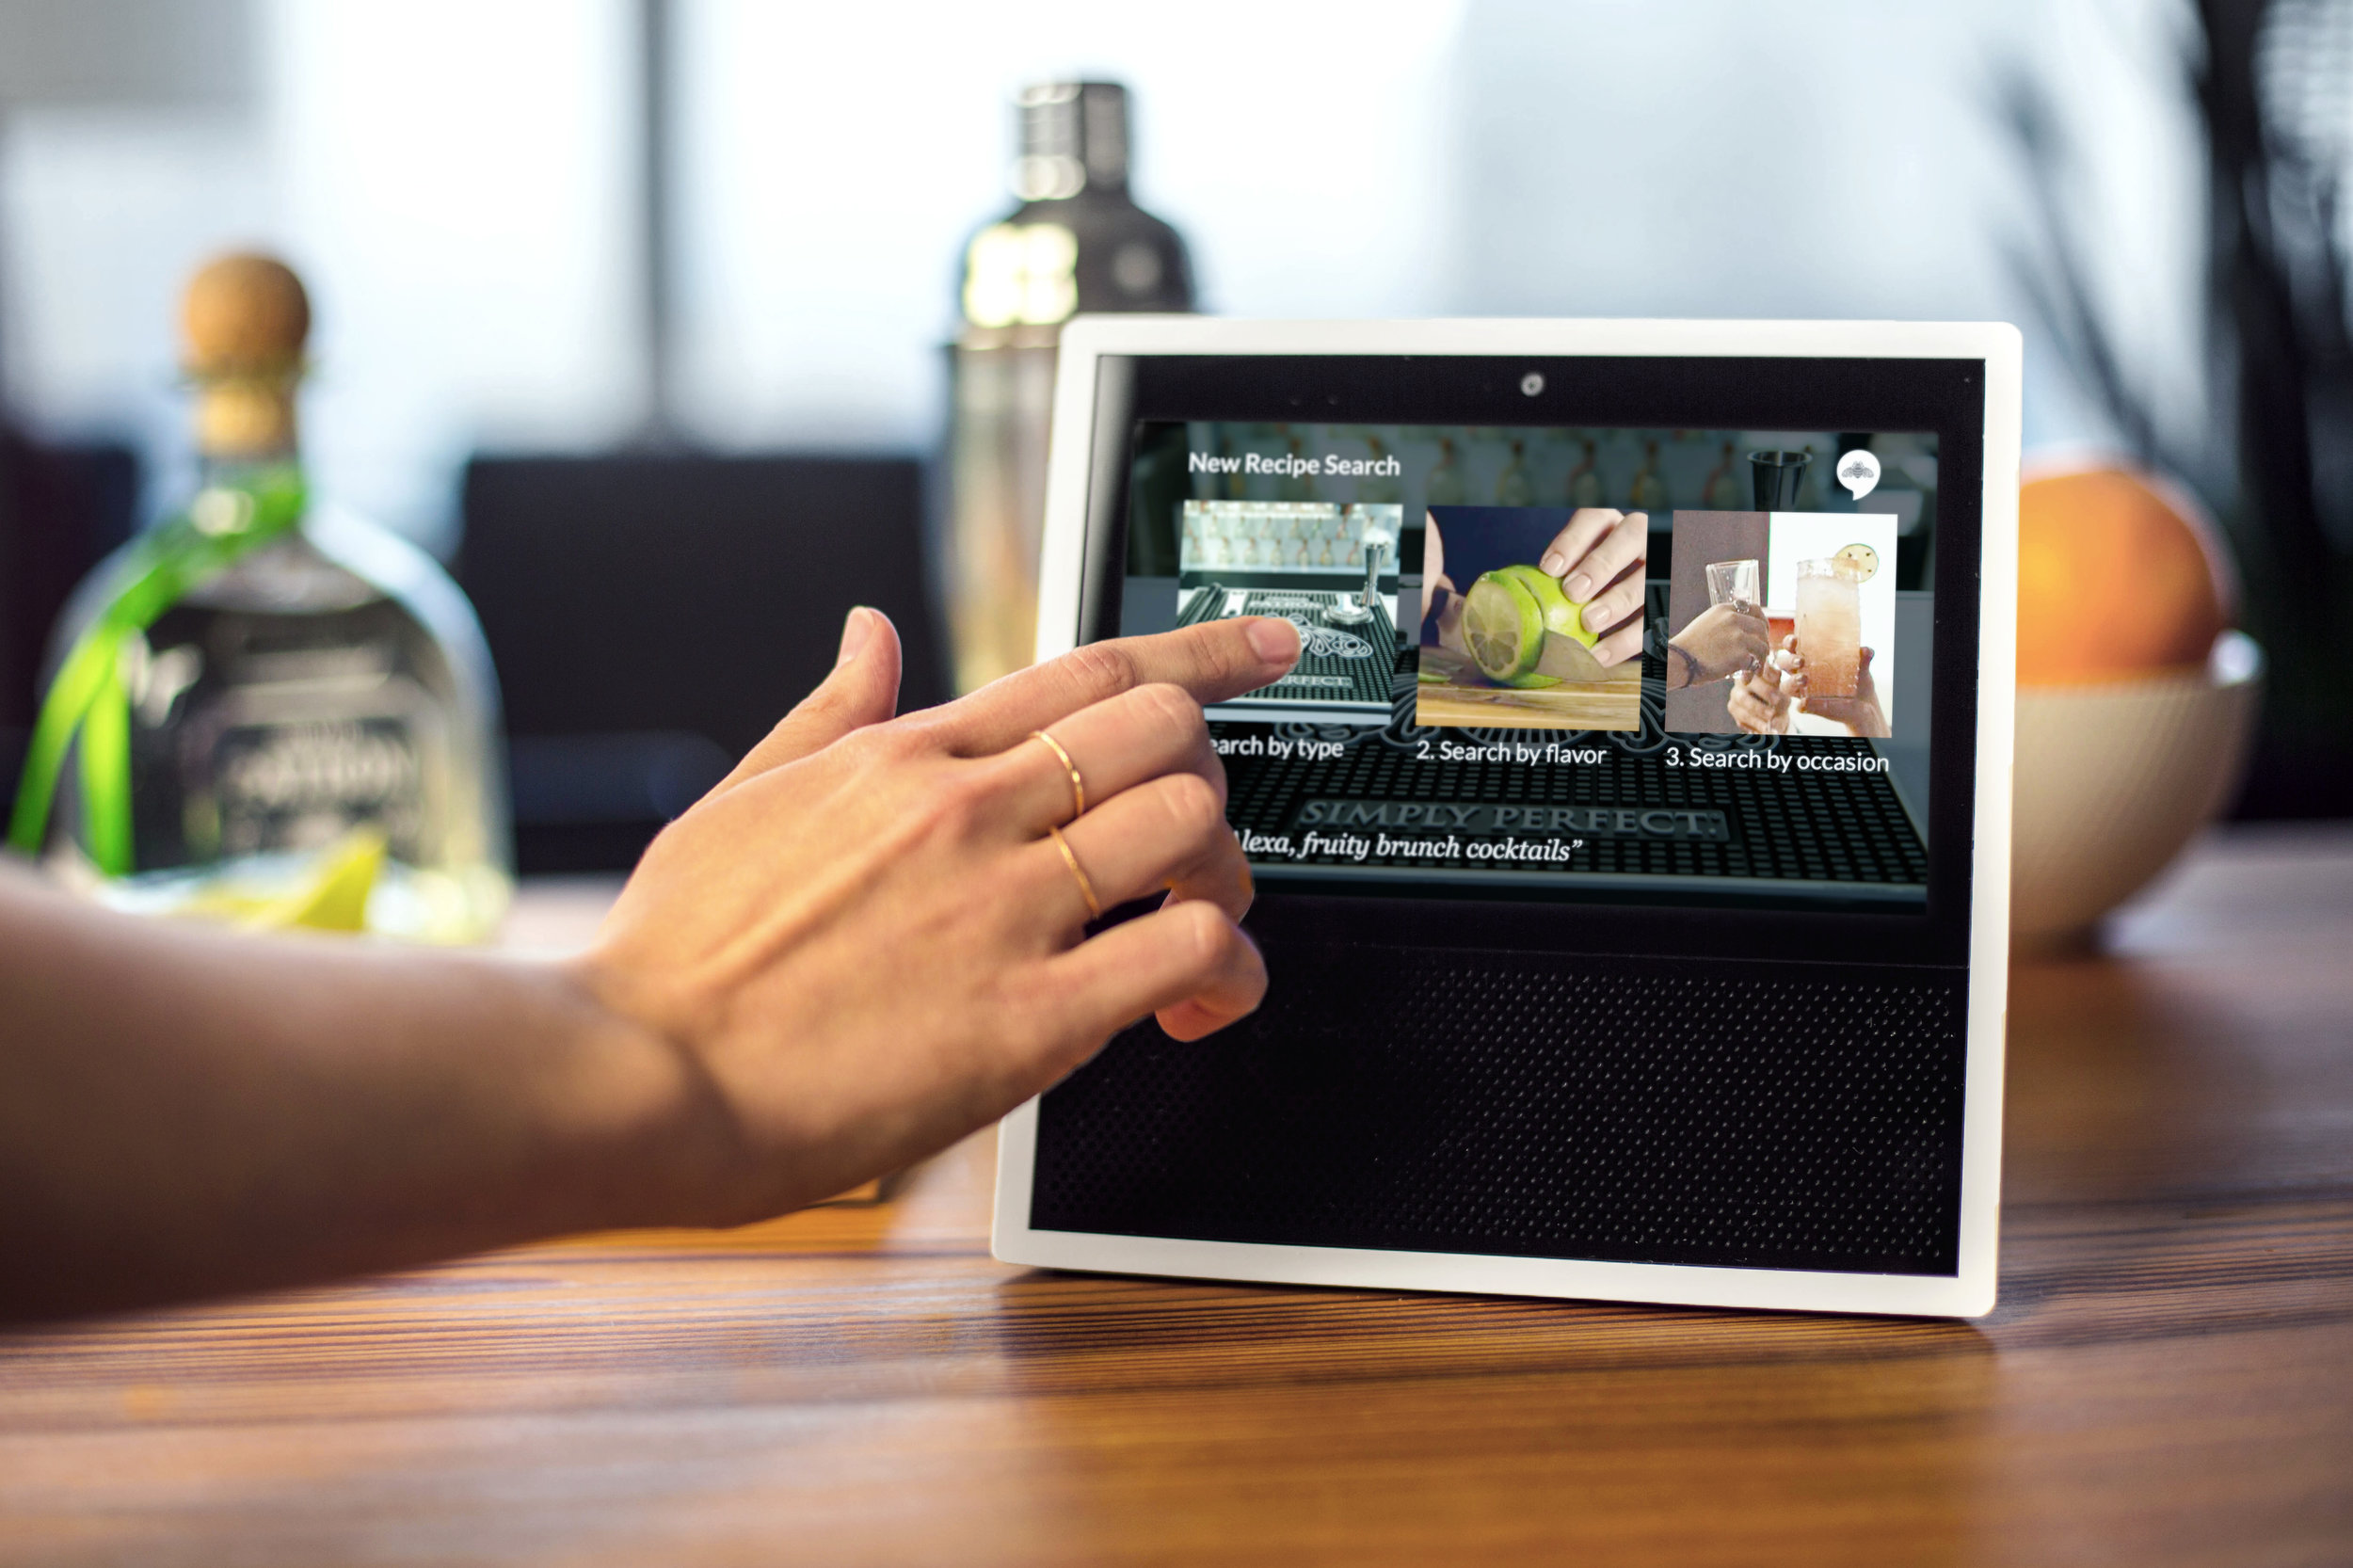 Ask Patrón Amazon Echo skill adaptation for the Amazon Echo Show // Voice-meets-visual in the Echo Show, giving new opportunities to offer tequila-lovers ways to make cocktails at home //  Learn more about it //  Check it out